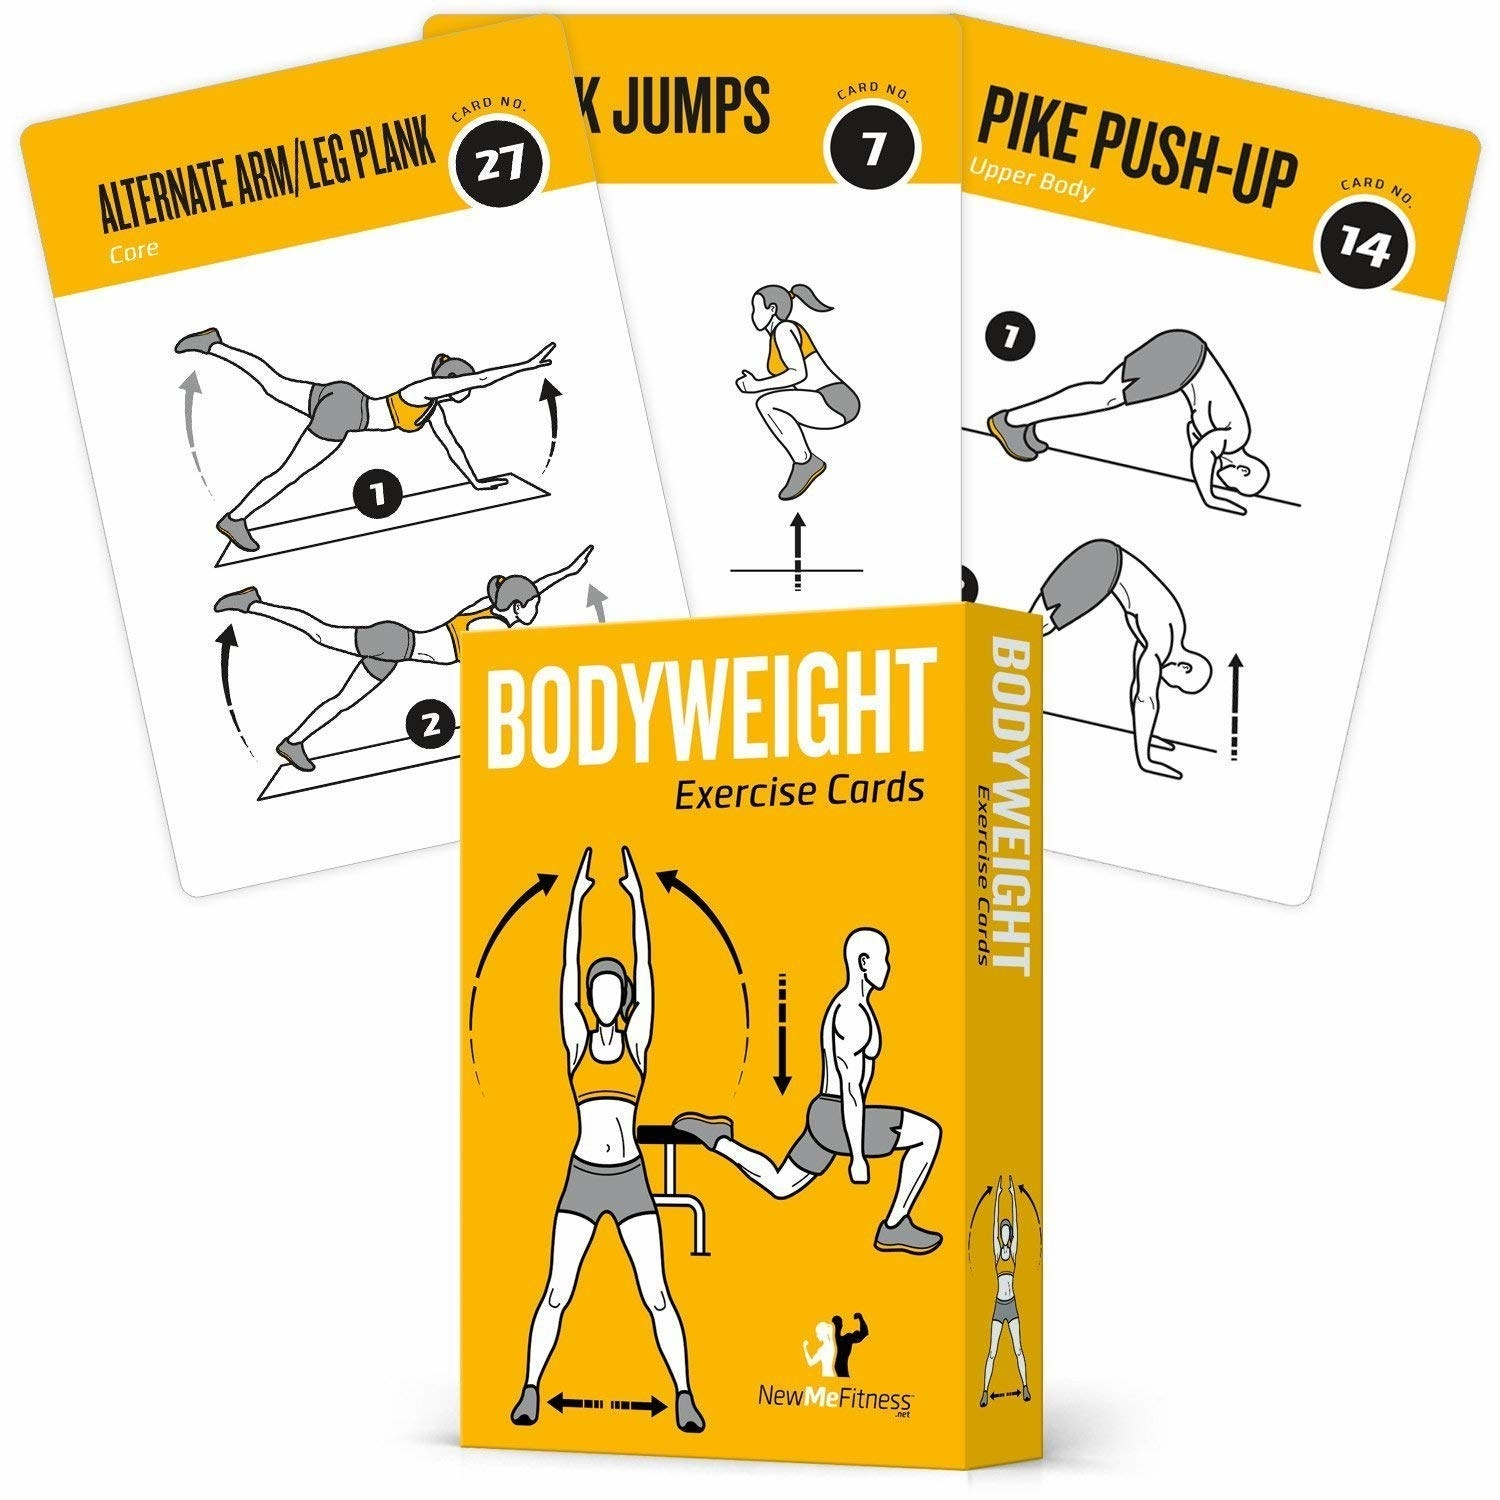 the pack of bodyweight exercise cards